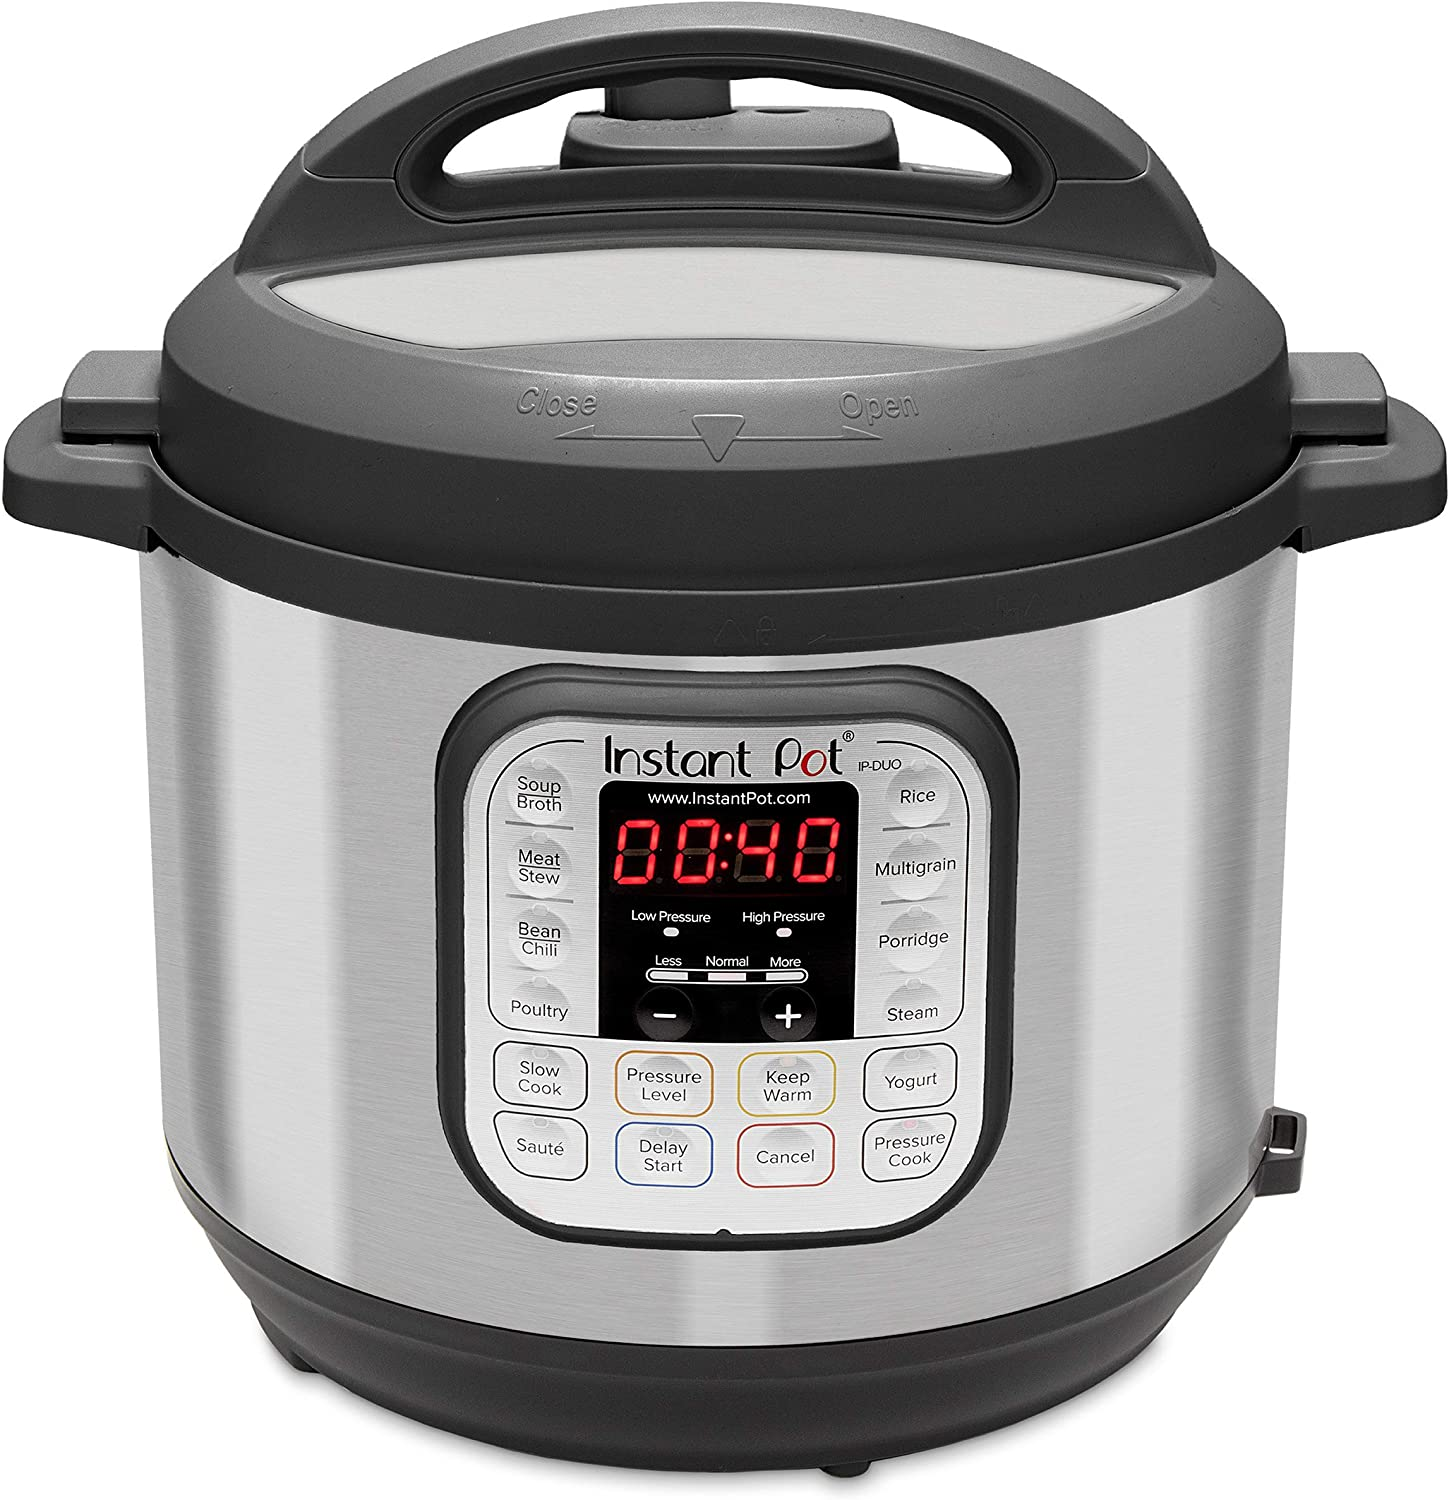 Instant Pot Duo 7-in-1 Electric Pressure Cooker, Slow Cooker, Rice Cooker, And More